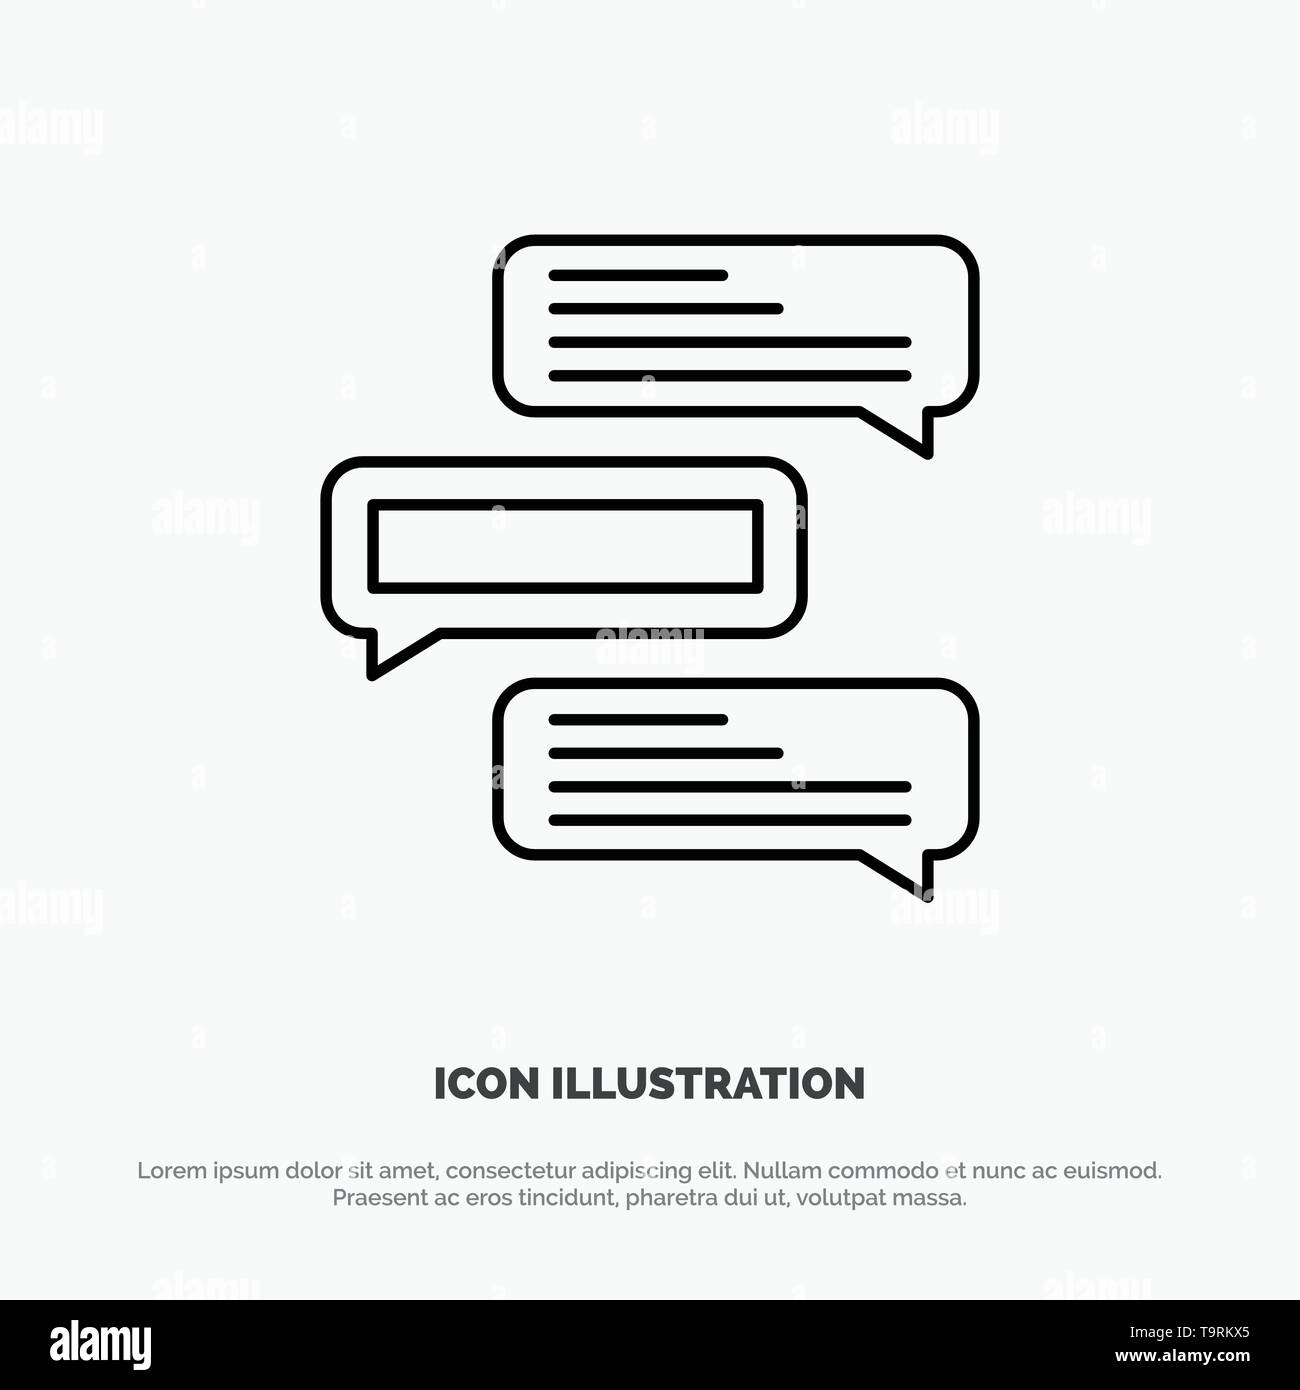 Chat, Bubbles, Comments, Conversations, Talks Line Icon Vector - Stock Image